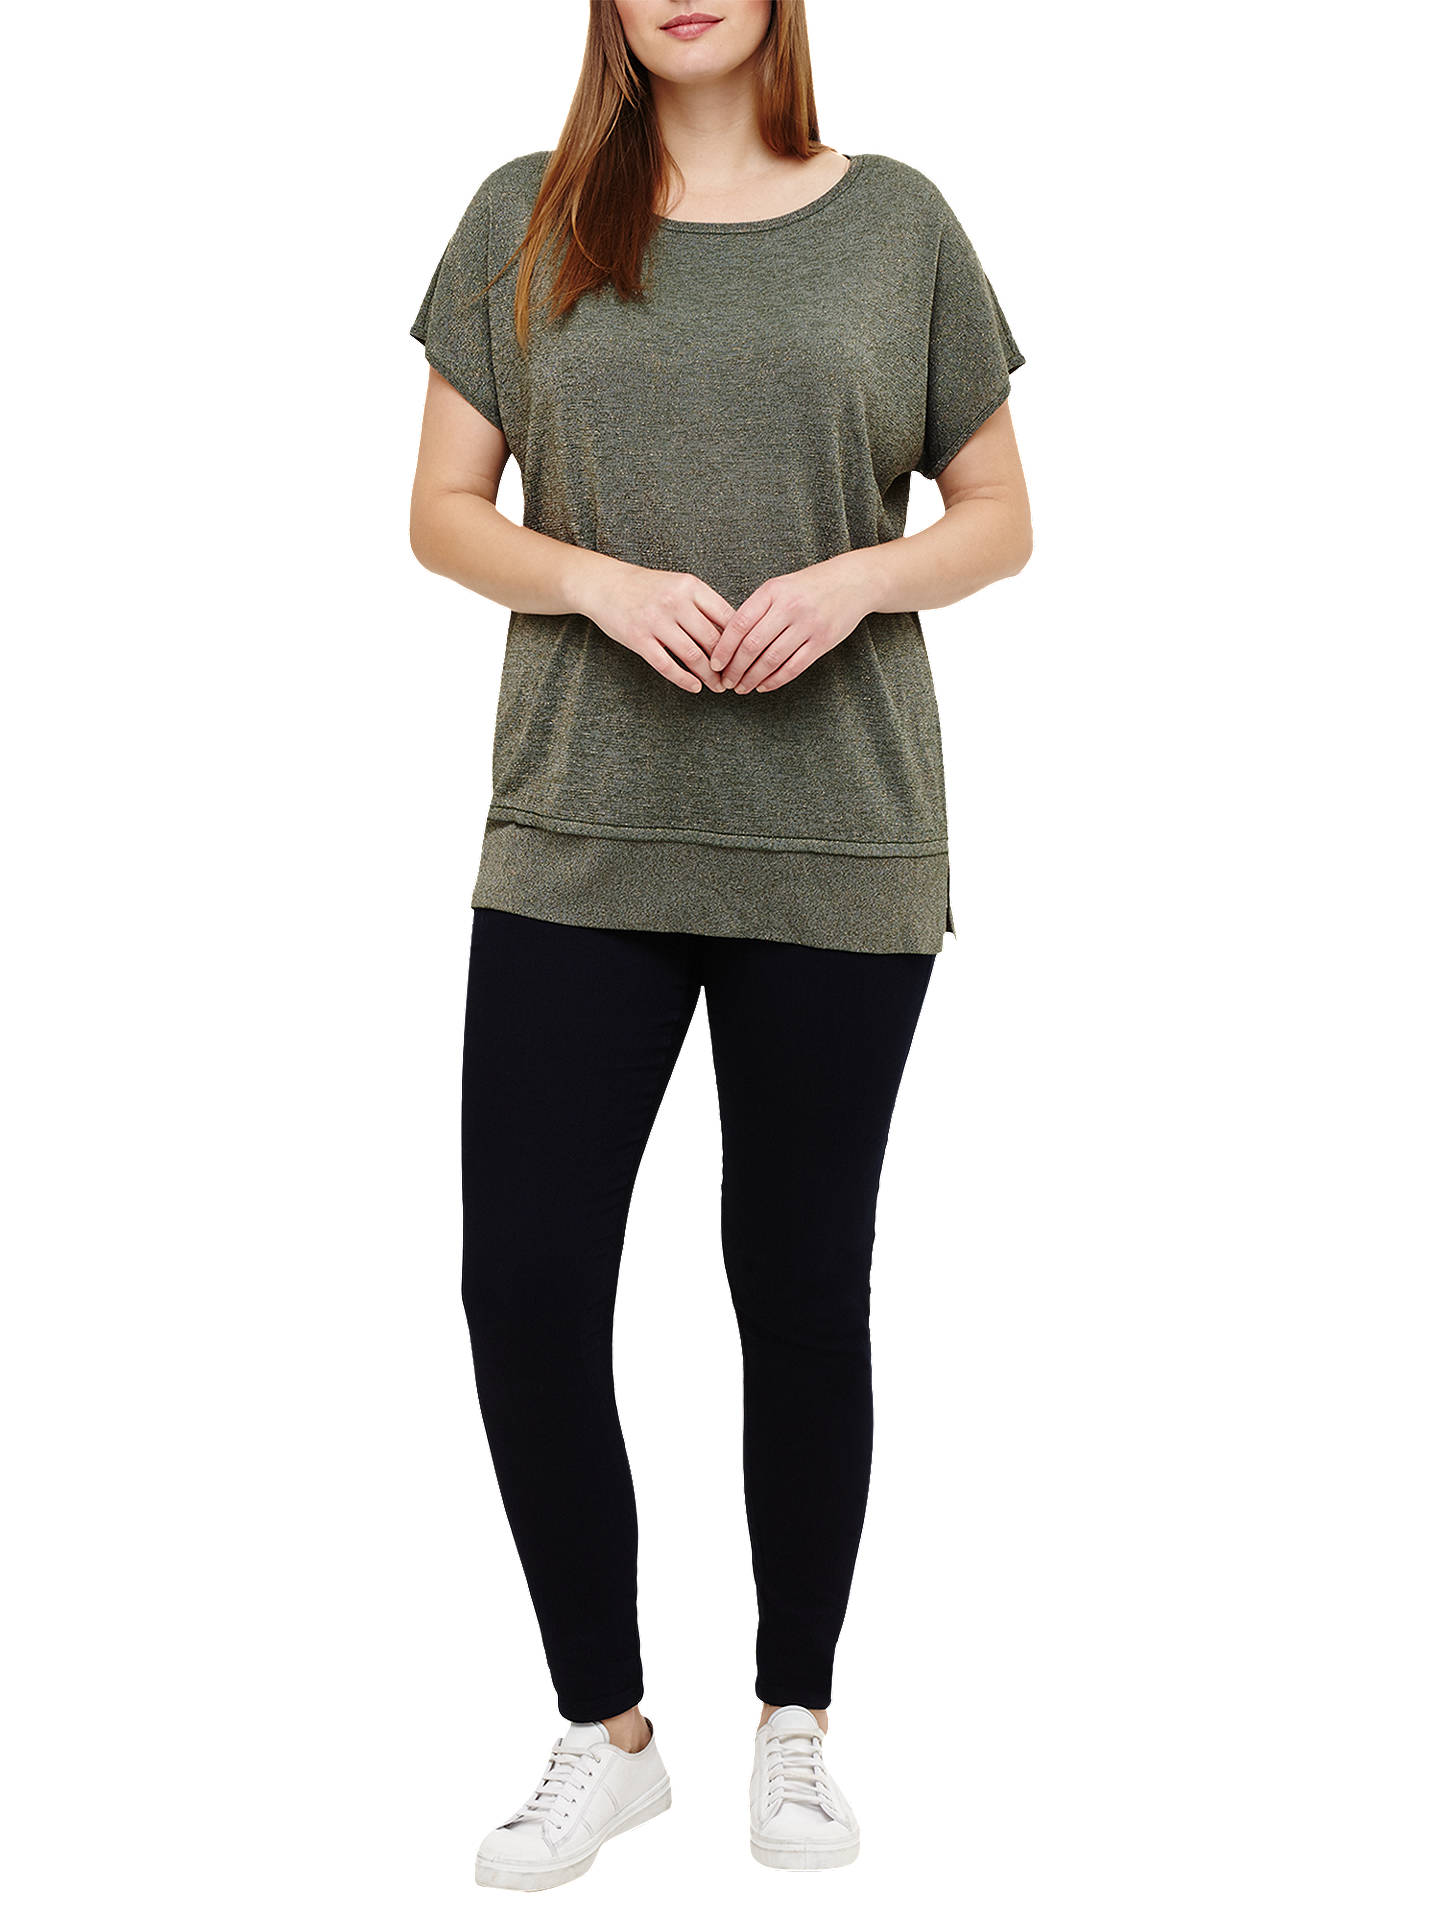 Buy Studio 8 Quinzy Shimmer Knit Top, Green, 12 Online at johnlewis.com